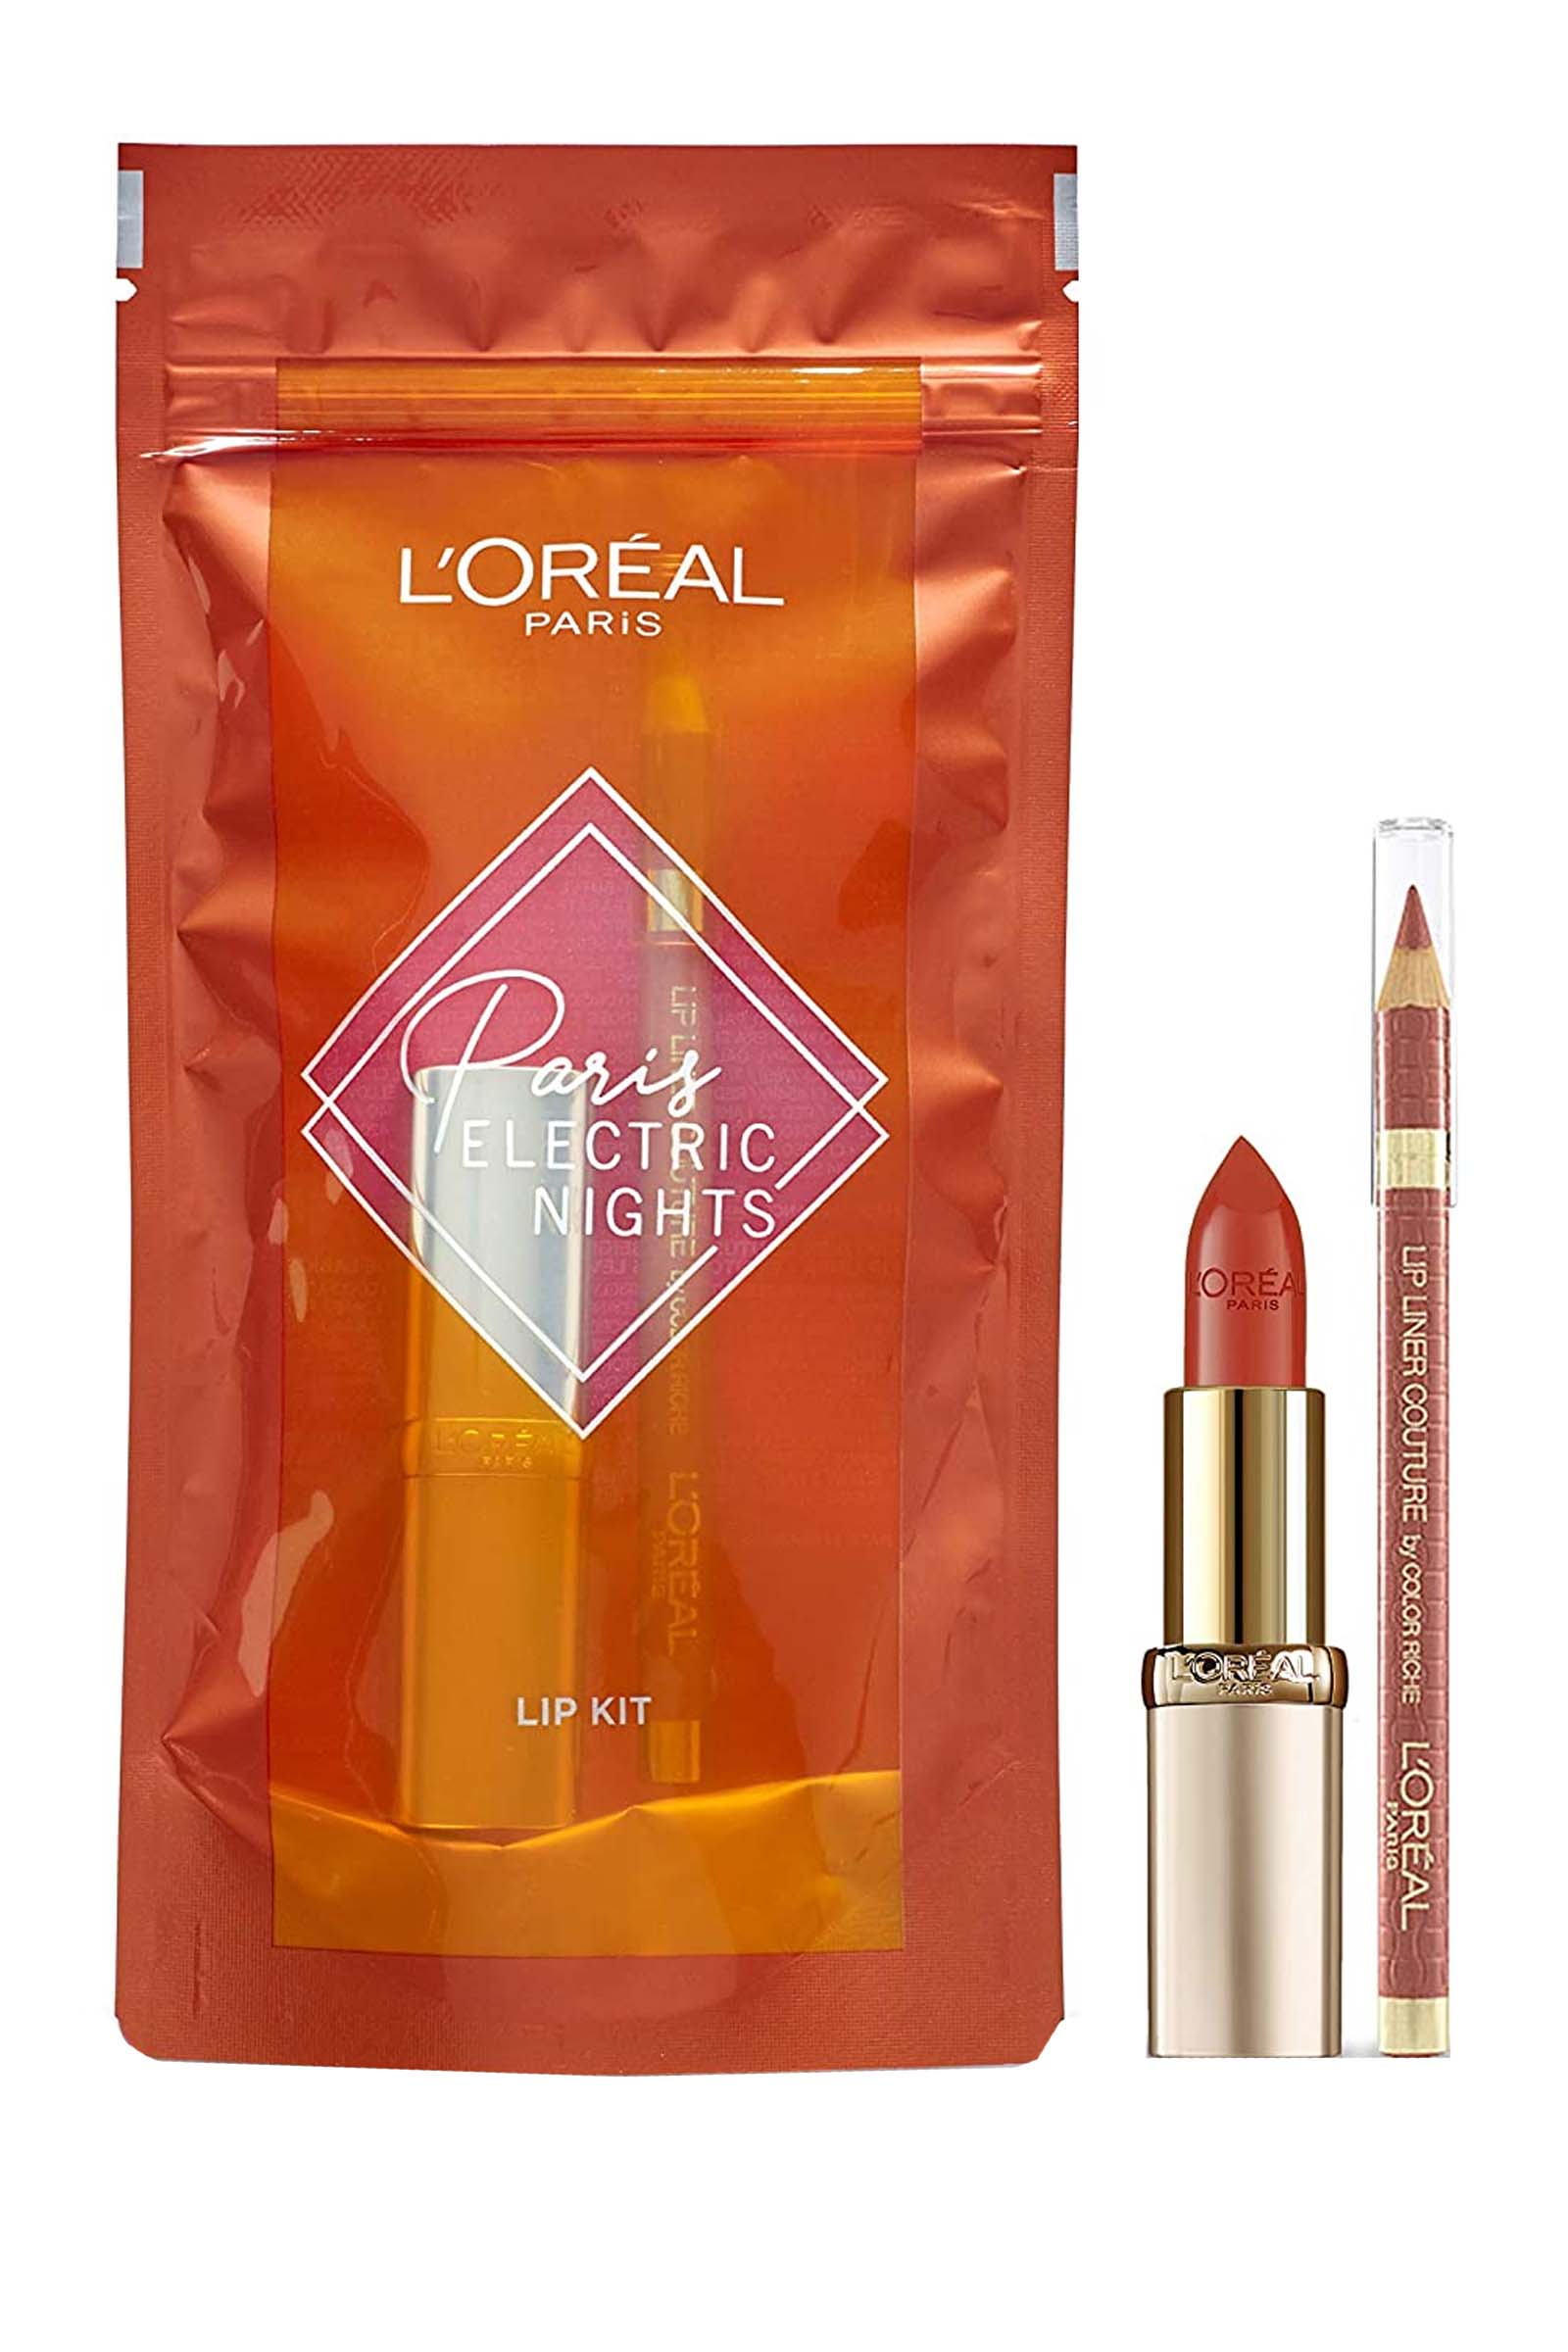 L Oreal L'Oreal Paris Paris Electric Nights Lip Kit- Lip Liner Color Riche Beige a Nu Lipstick